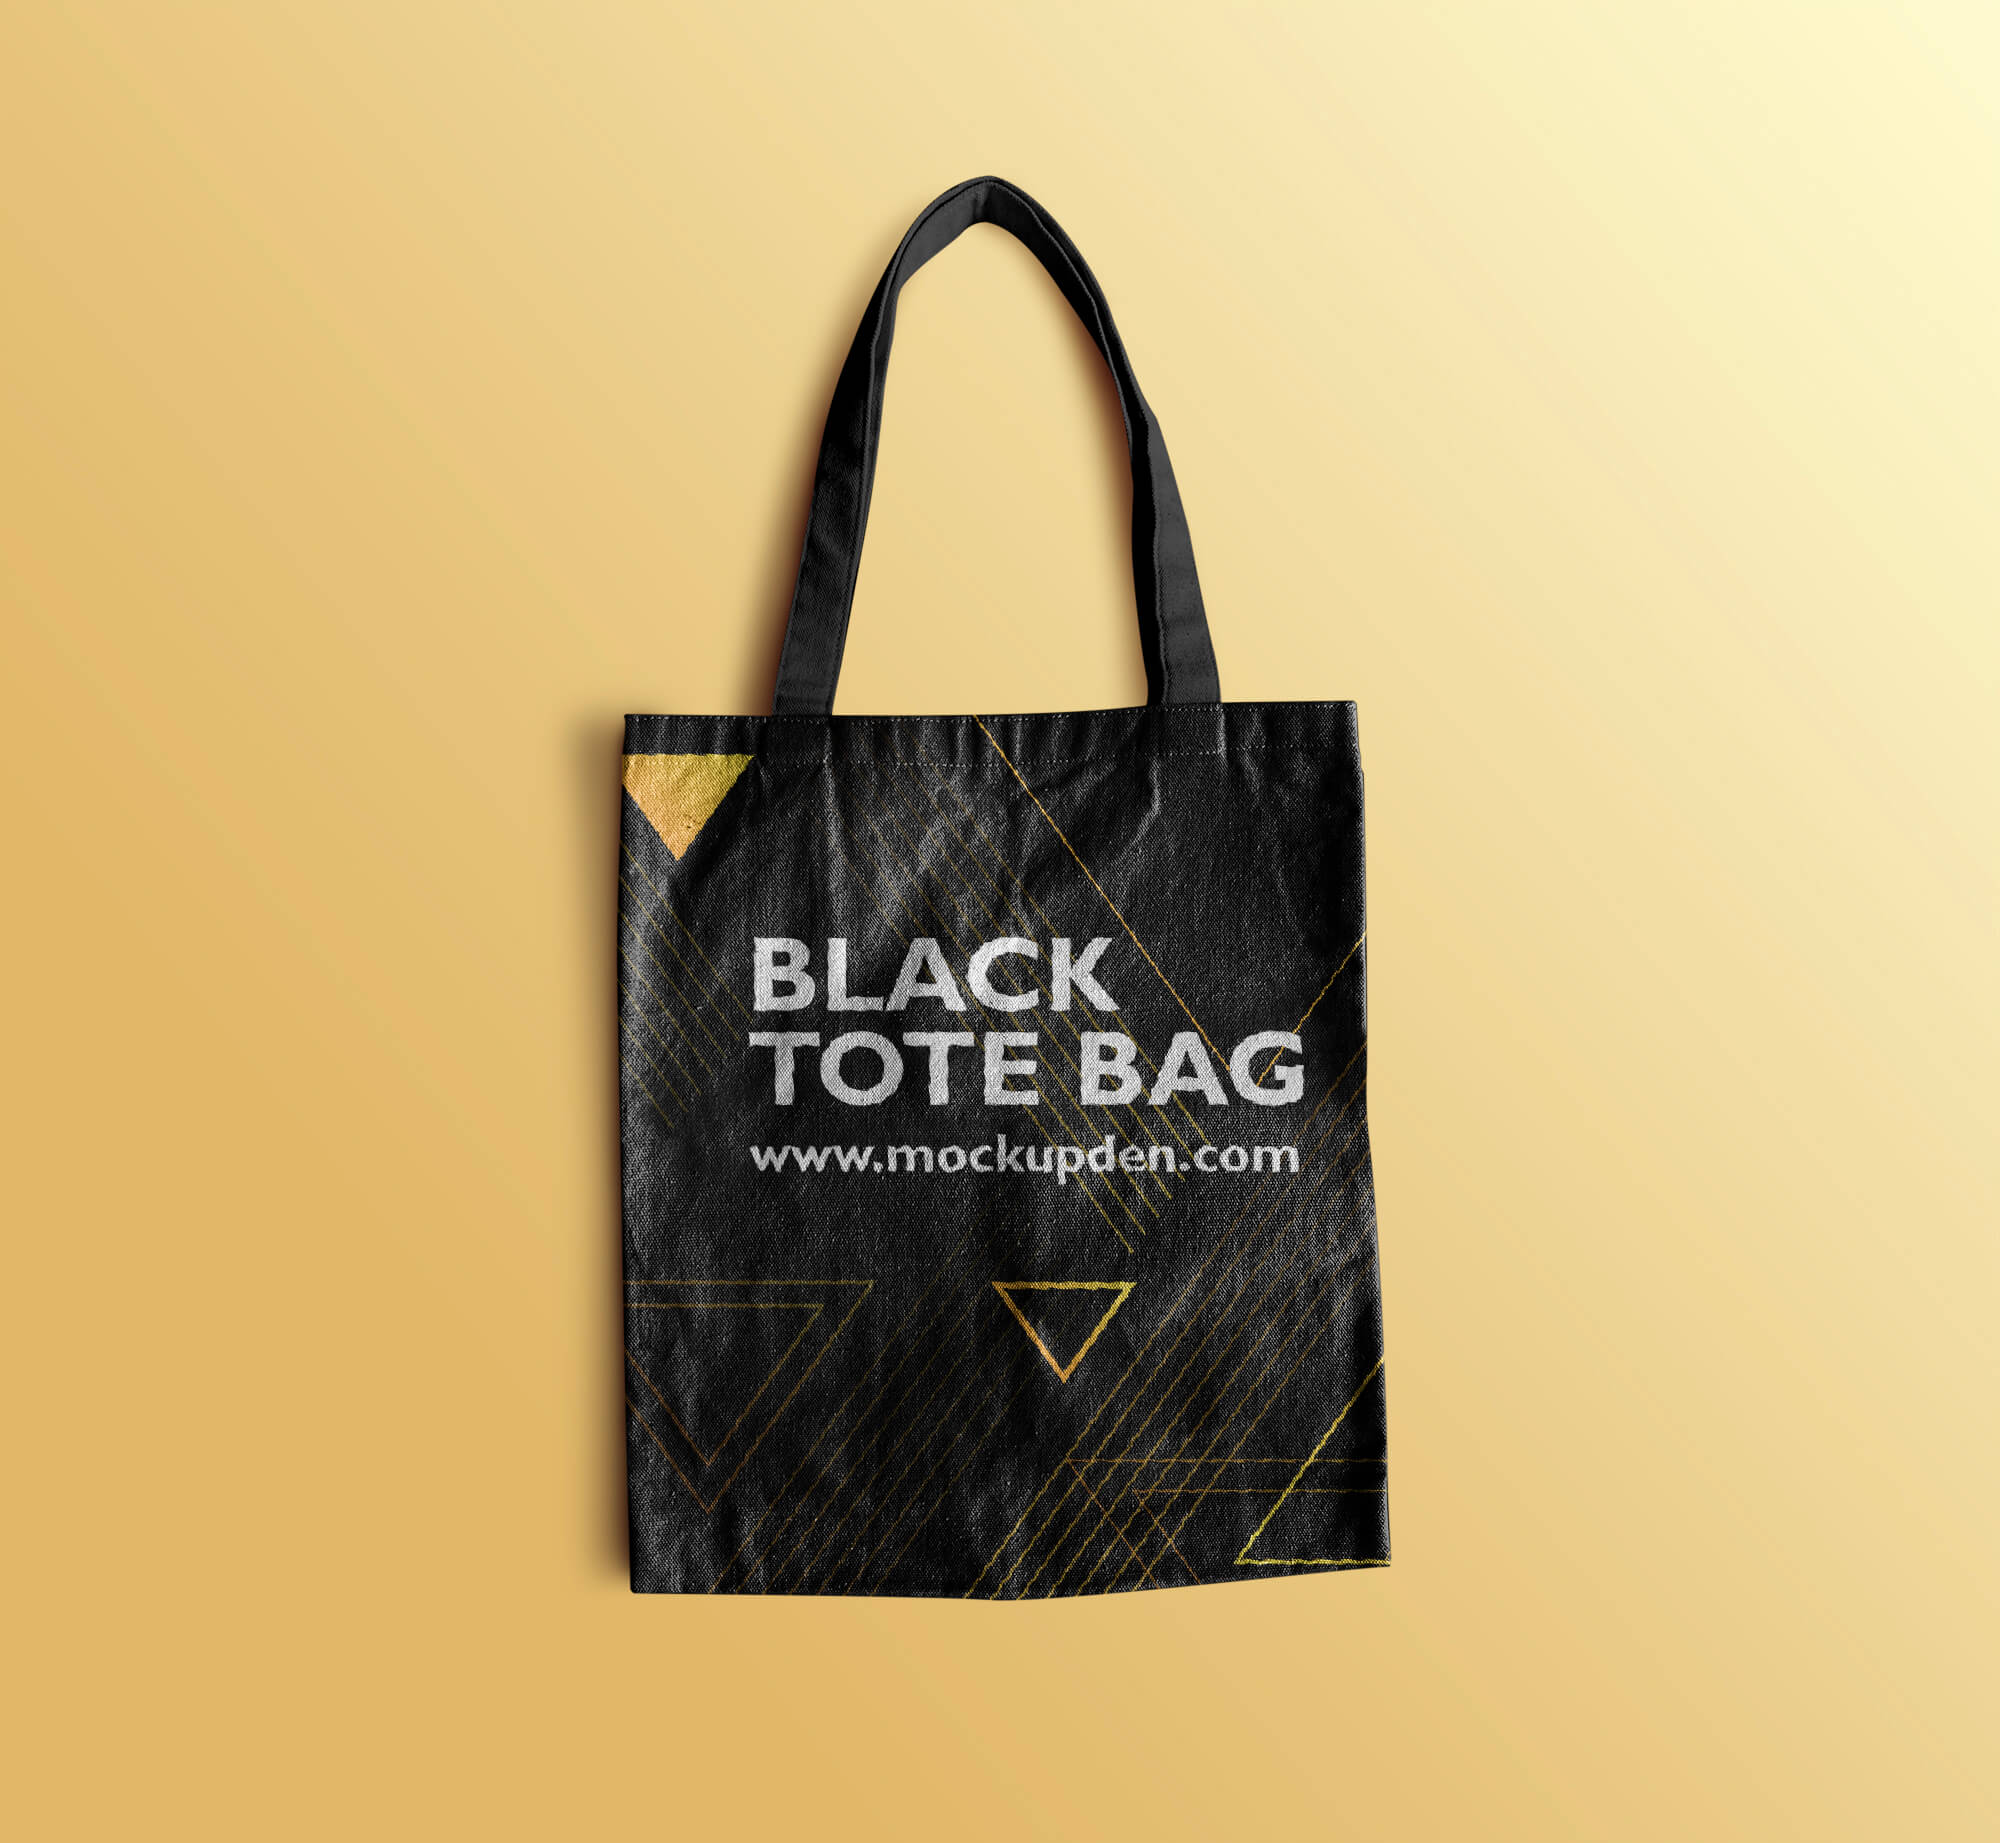 Design Free Black Tote Bag Mockup PSD Template